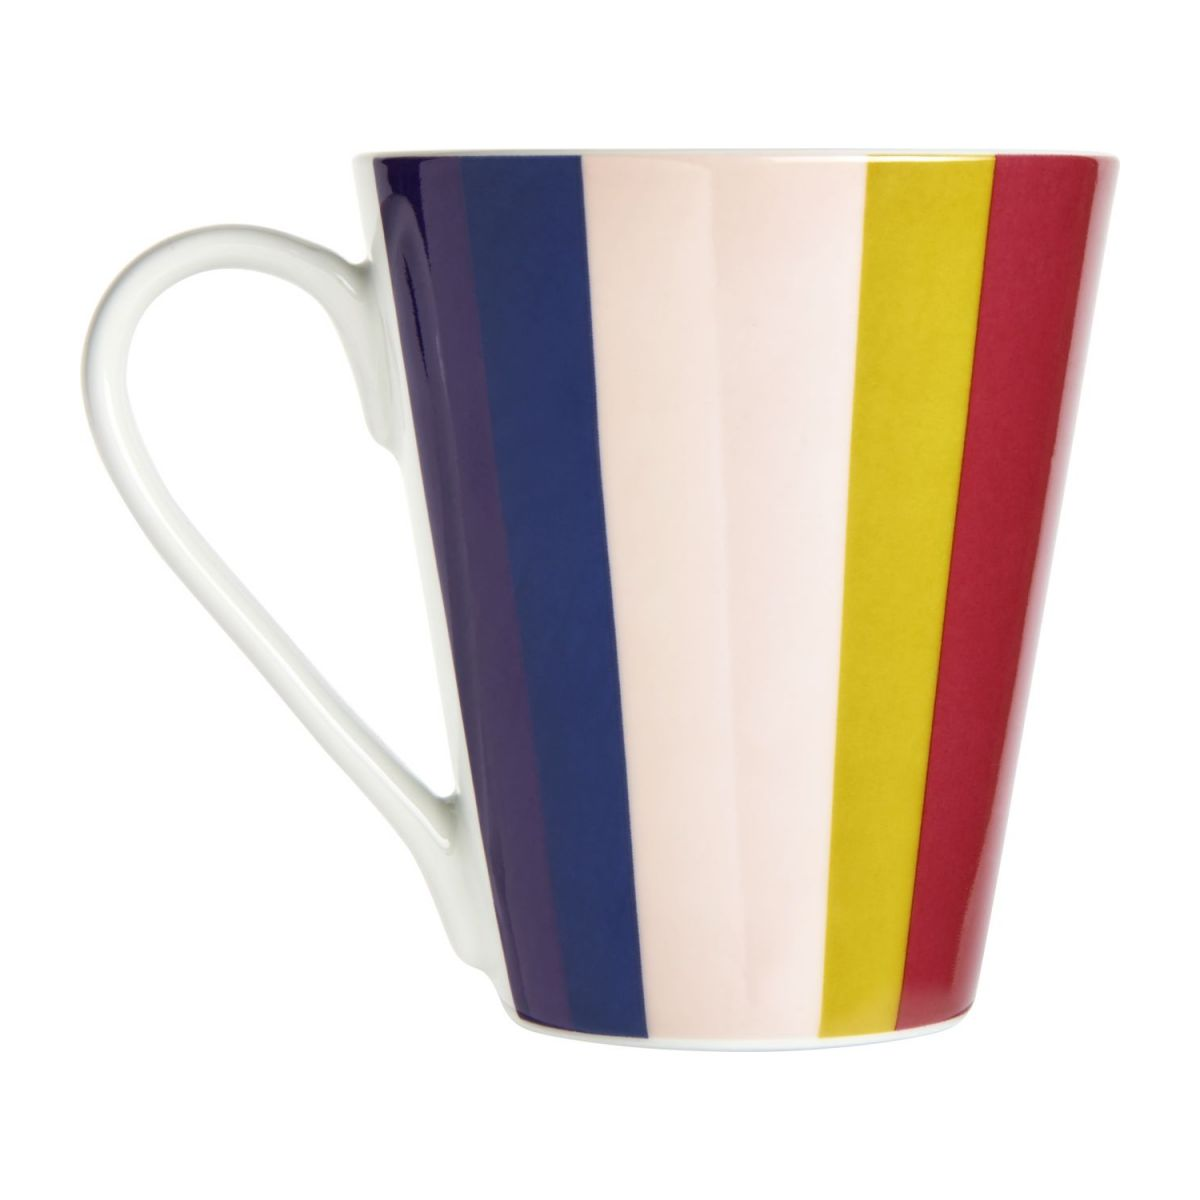 Set de 4 mugs en porcelaine n°5